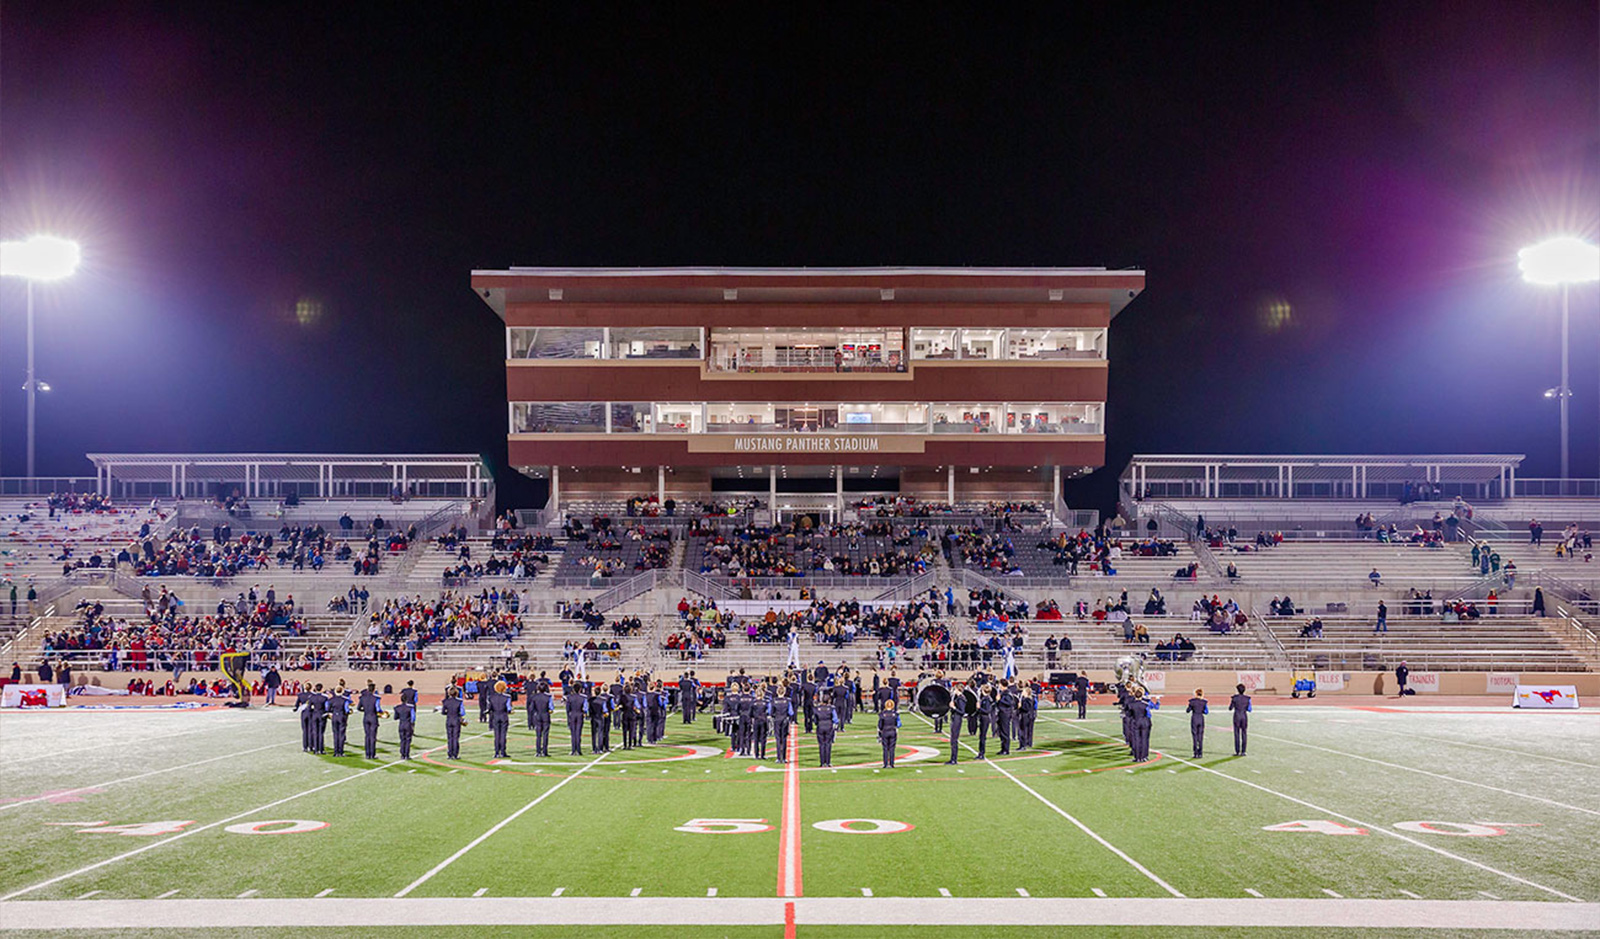 Grapevine-Colleyville ISD | Mustang-Panther Stadium